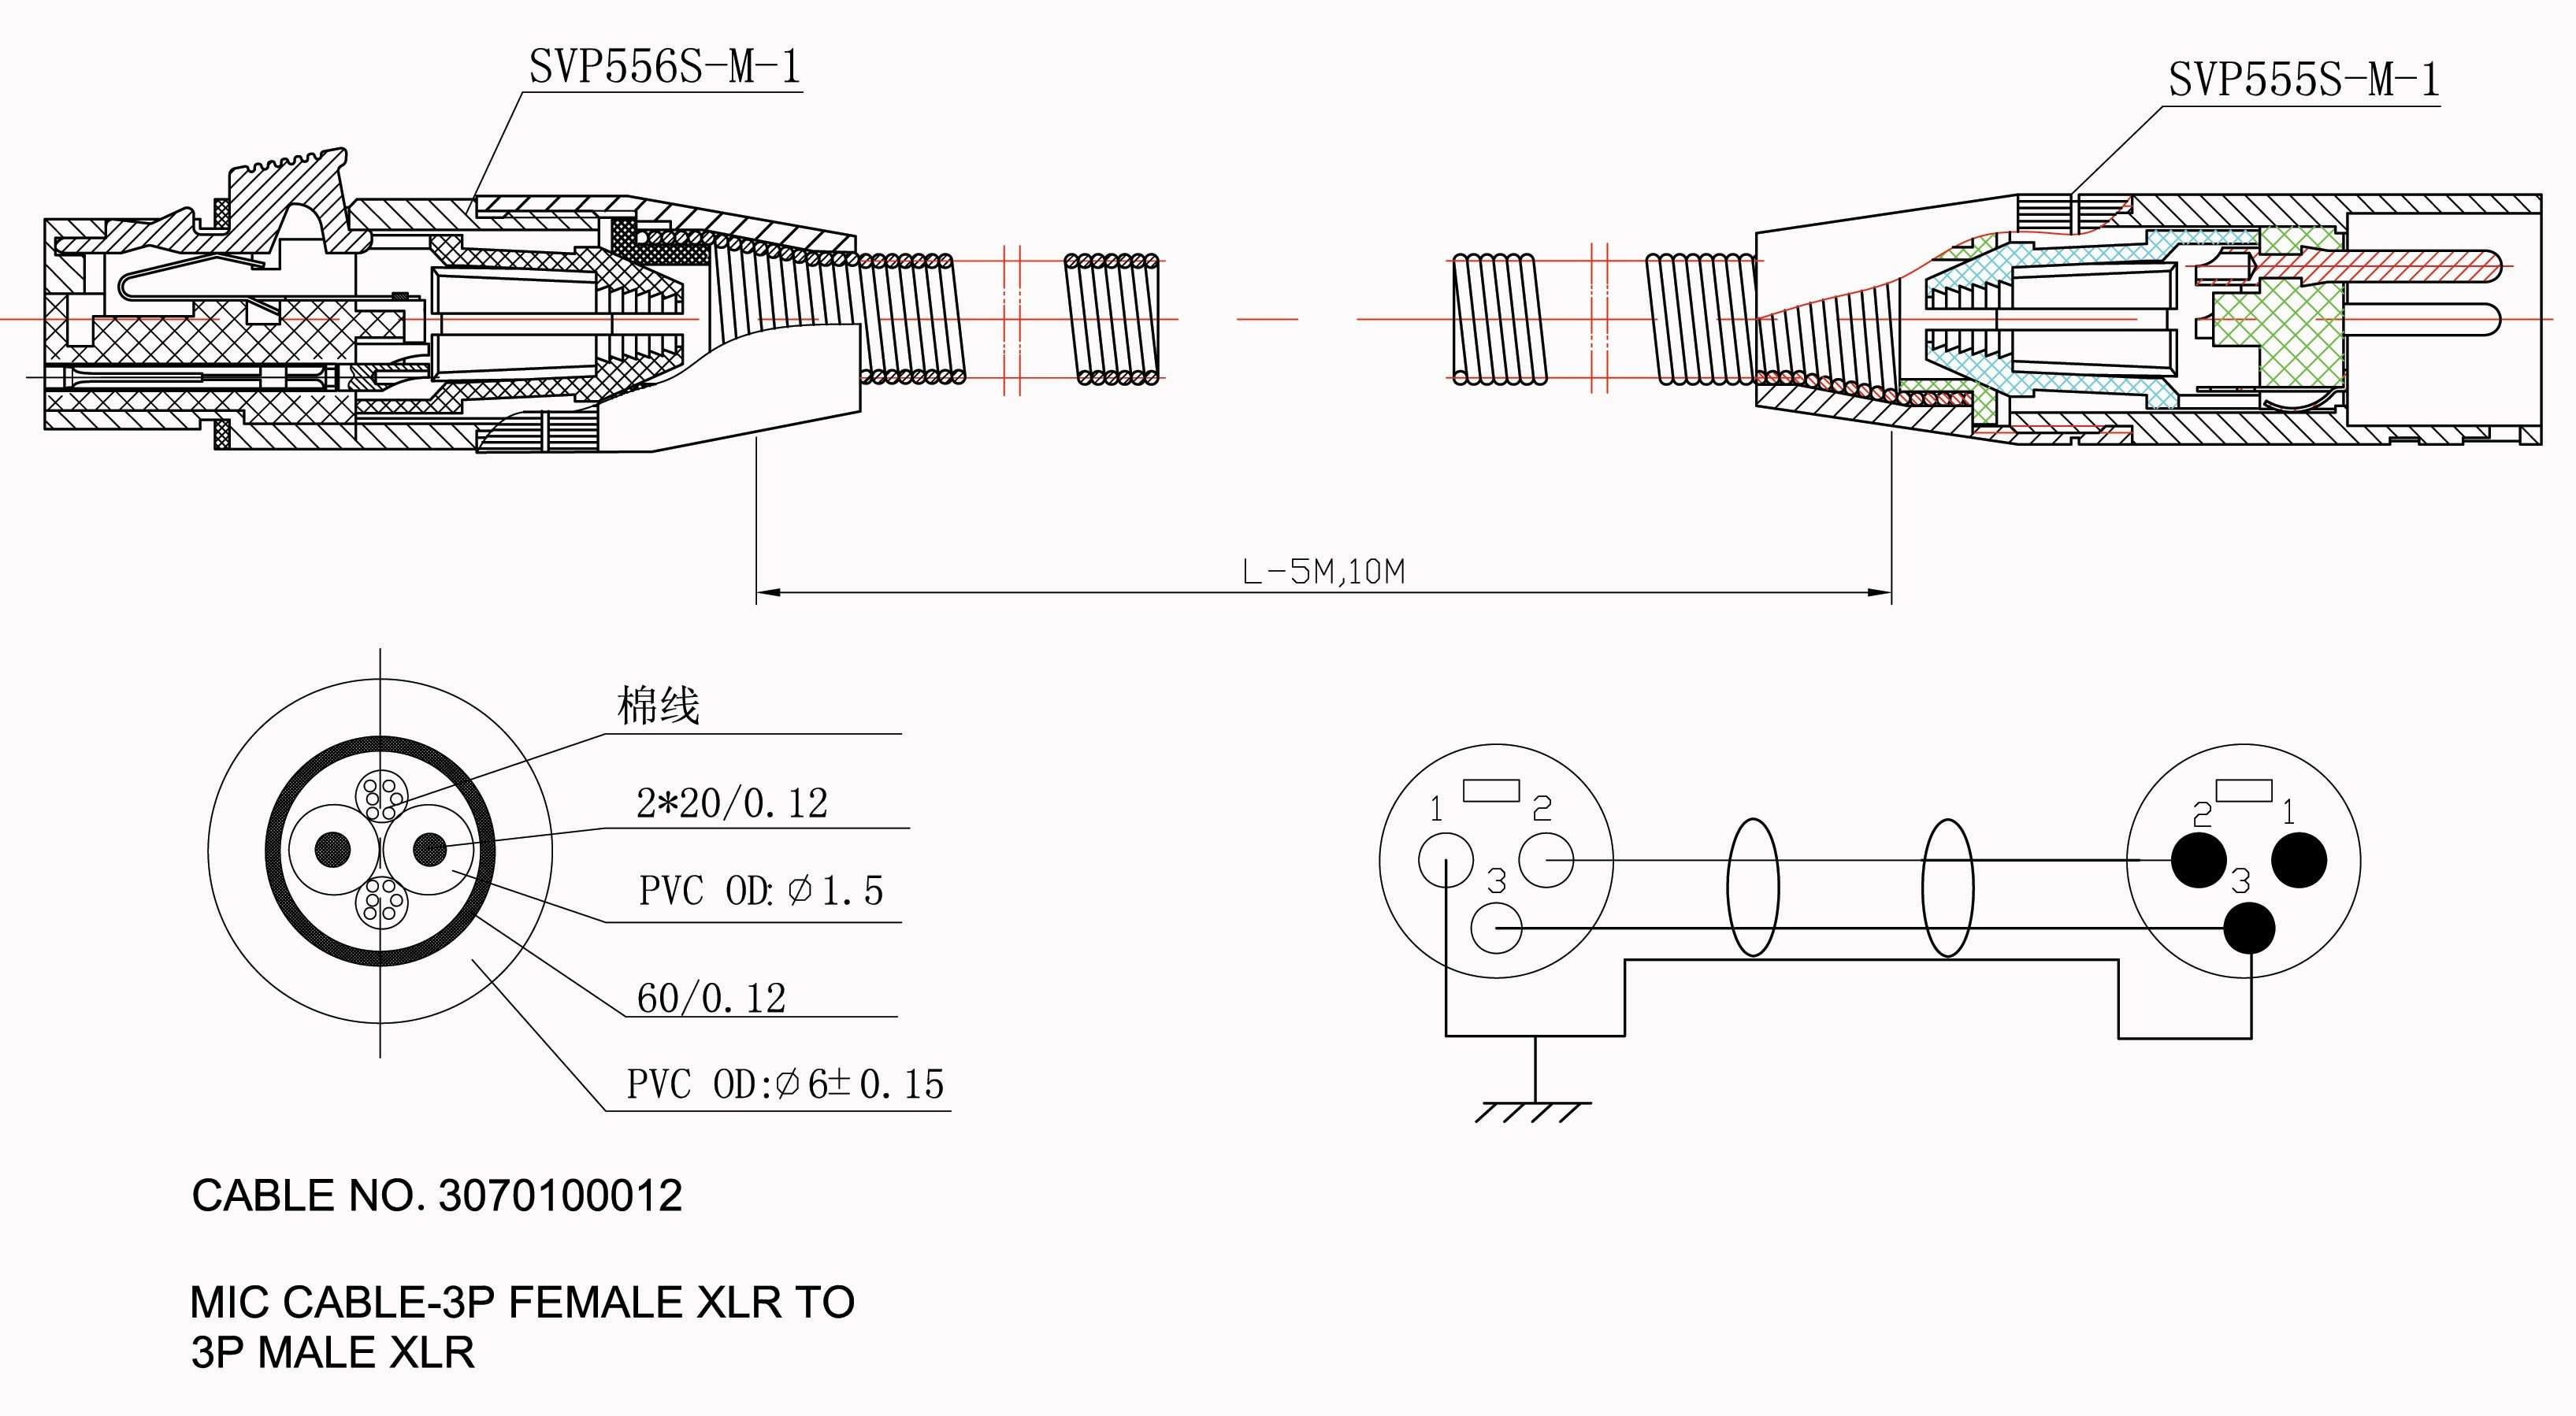 Extension Cord 20A 250V Wiring Diagram - Detailed Wiring Diagram - 20A 250V Plug Wiring Diagram